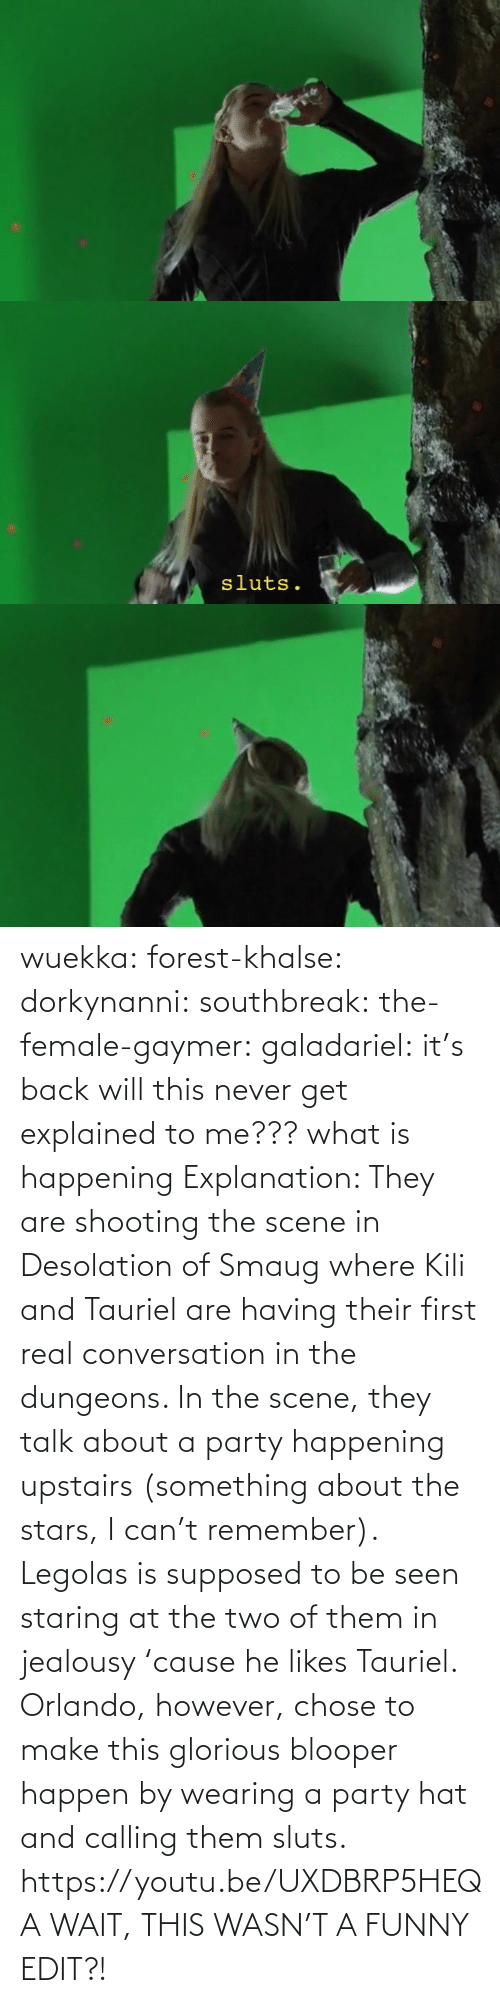 origin: wuekka: forest-khalse:   dorkynanni:  southbreak:   the-female-gaymer:   galadariel:  it's back   will this never get explained to me???    what is happening    Explanation:  They are shooting the scene in Desolation of Smaug where Kili and Tauriel are having their first real conversation in the dungeons.  In the scene, they talk about a party happening upstairs (something about the stars, I can't remember). Legolas is supposed to be seen staring at the two of them in jealousy 'cause he likes Tauriel.  Orlando, however, chose to make this glorious blooper happen by wearing a party hat and calling them sluts.    https://youtu.be/UXDBRP5HEQA    WAIT, THIS WASN'T A FUNNY EDIT?!